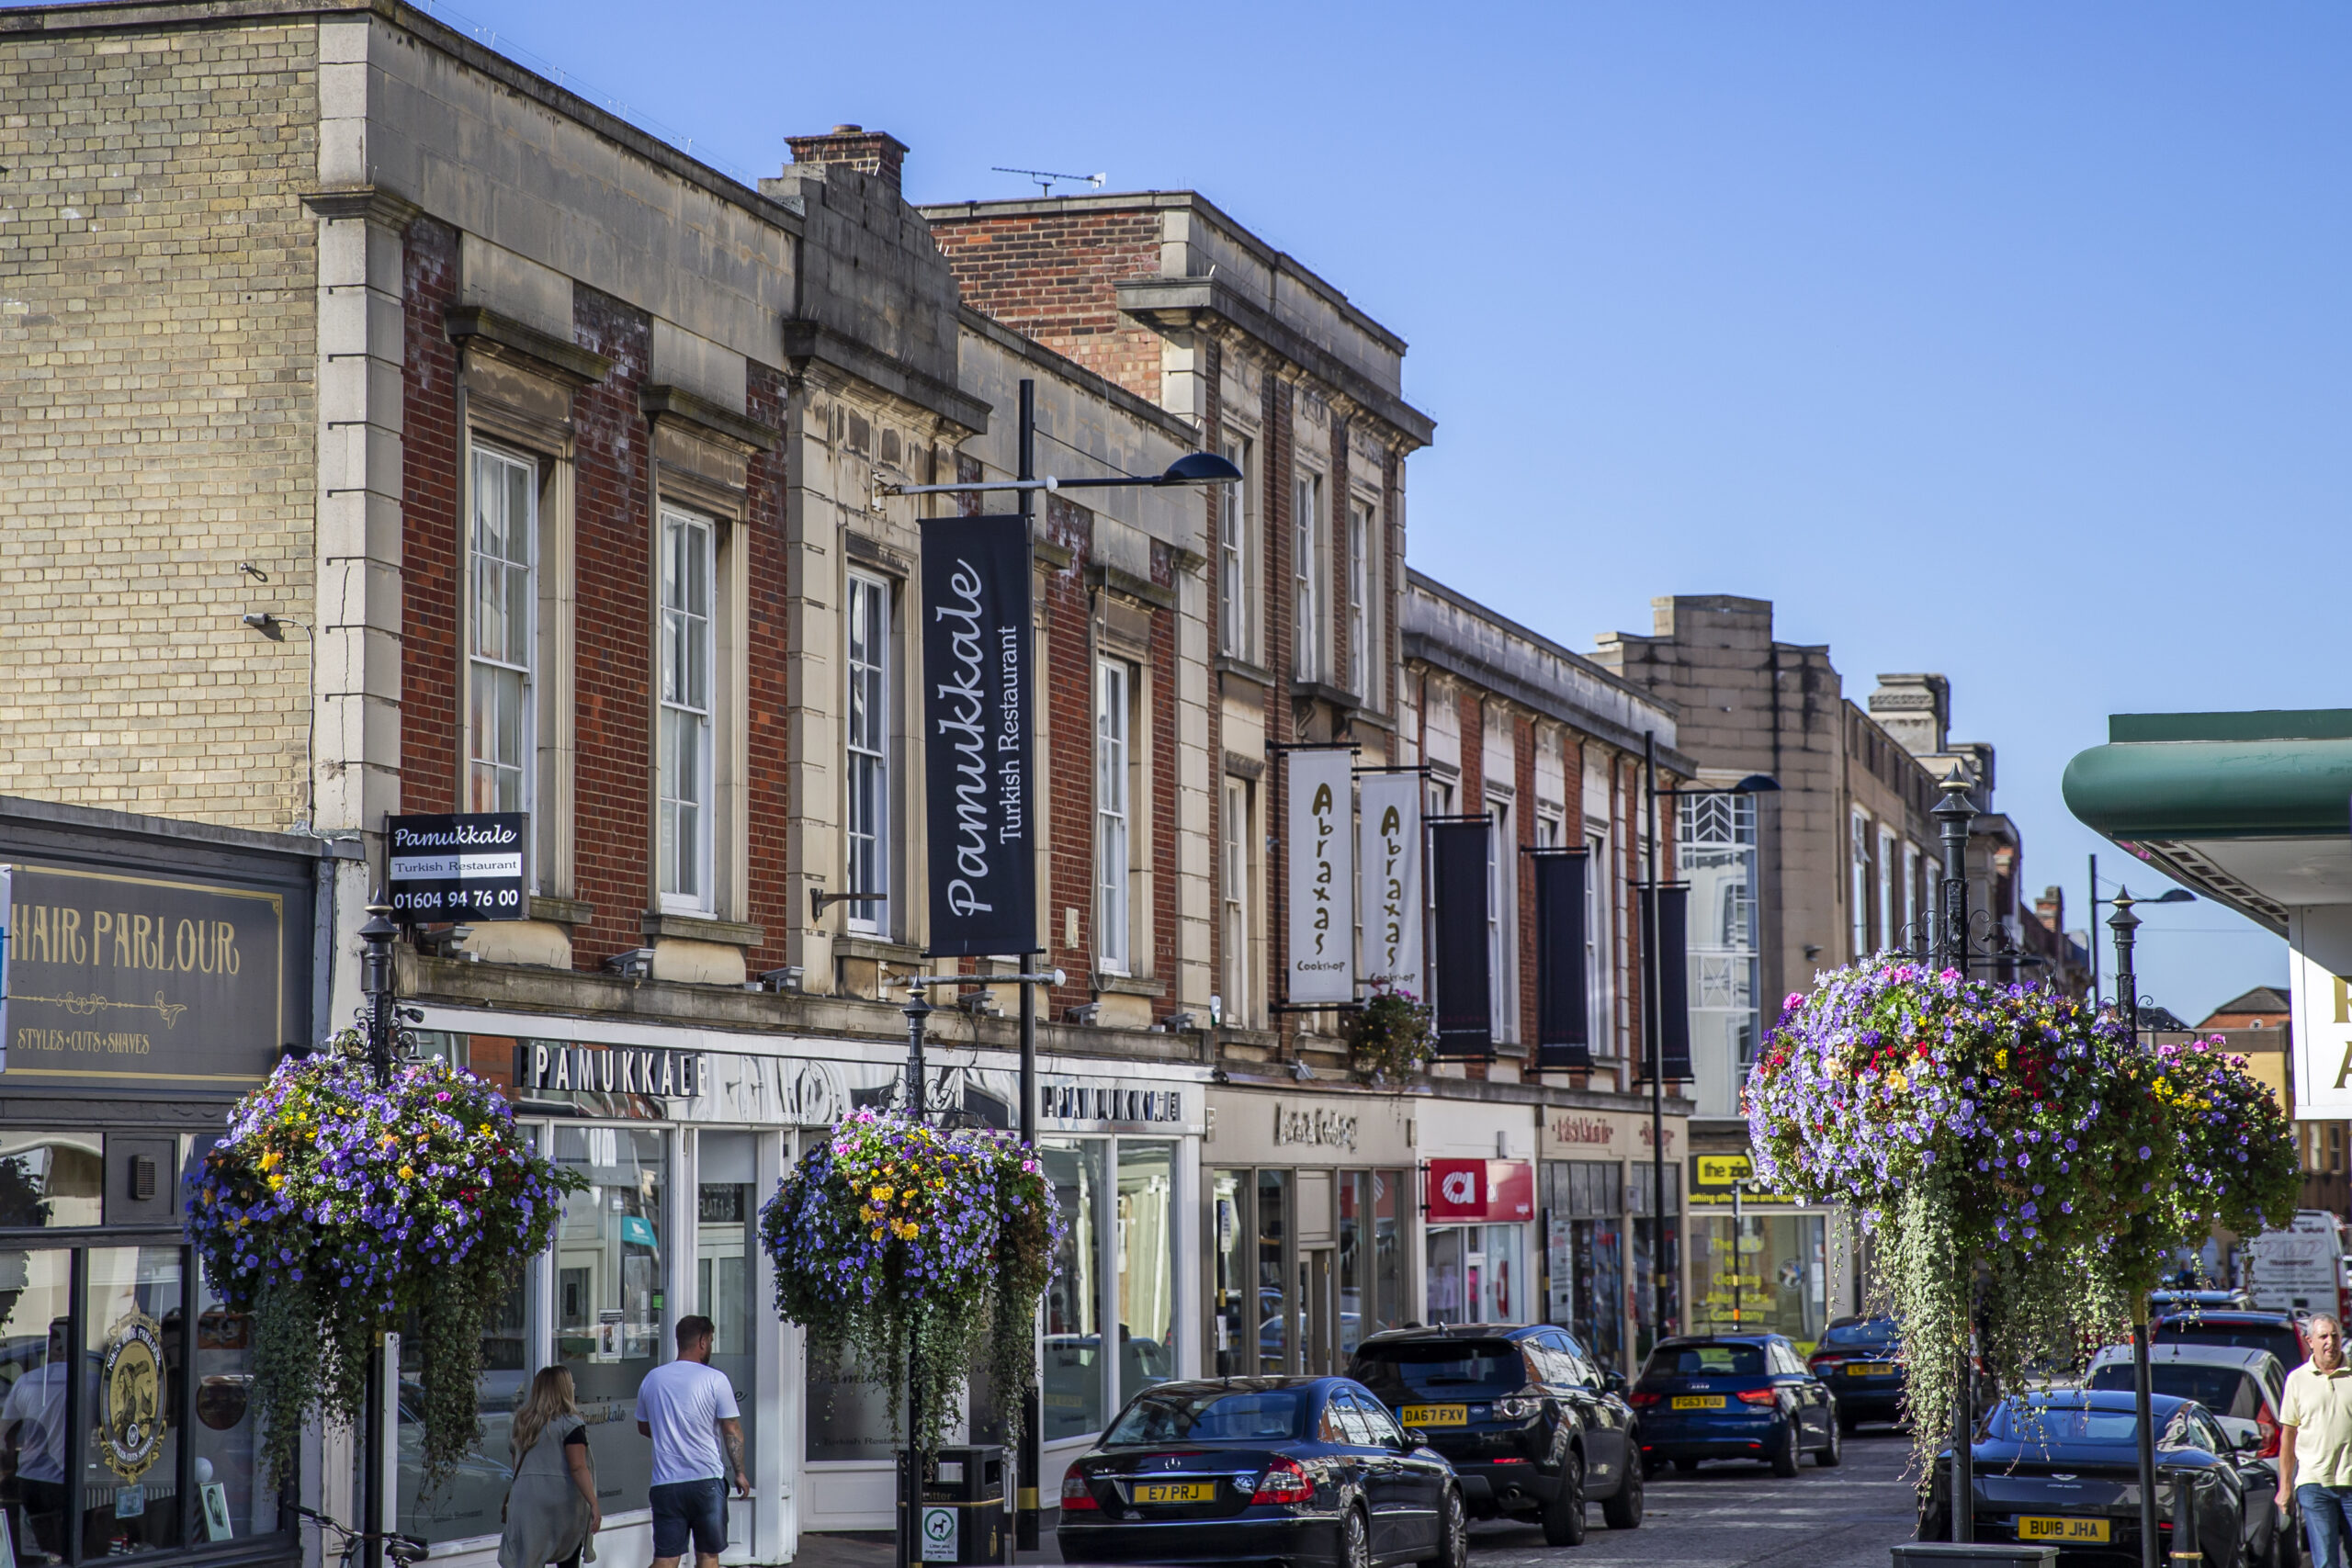 FiverFest is chance for shoppers to support independent traders in Northampton town centre - NN Pulse